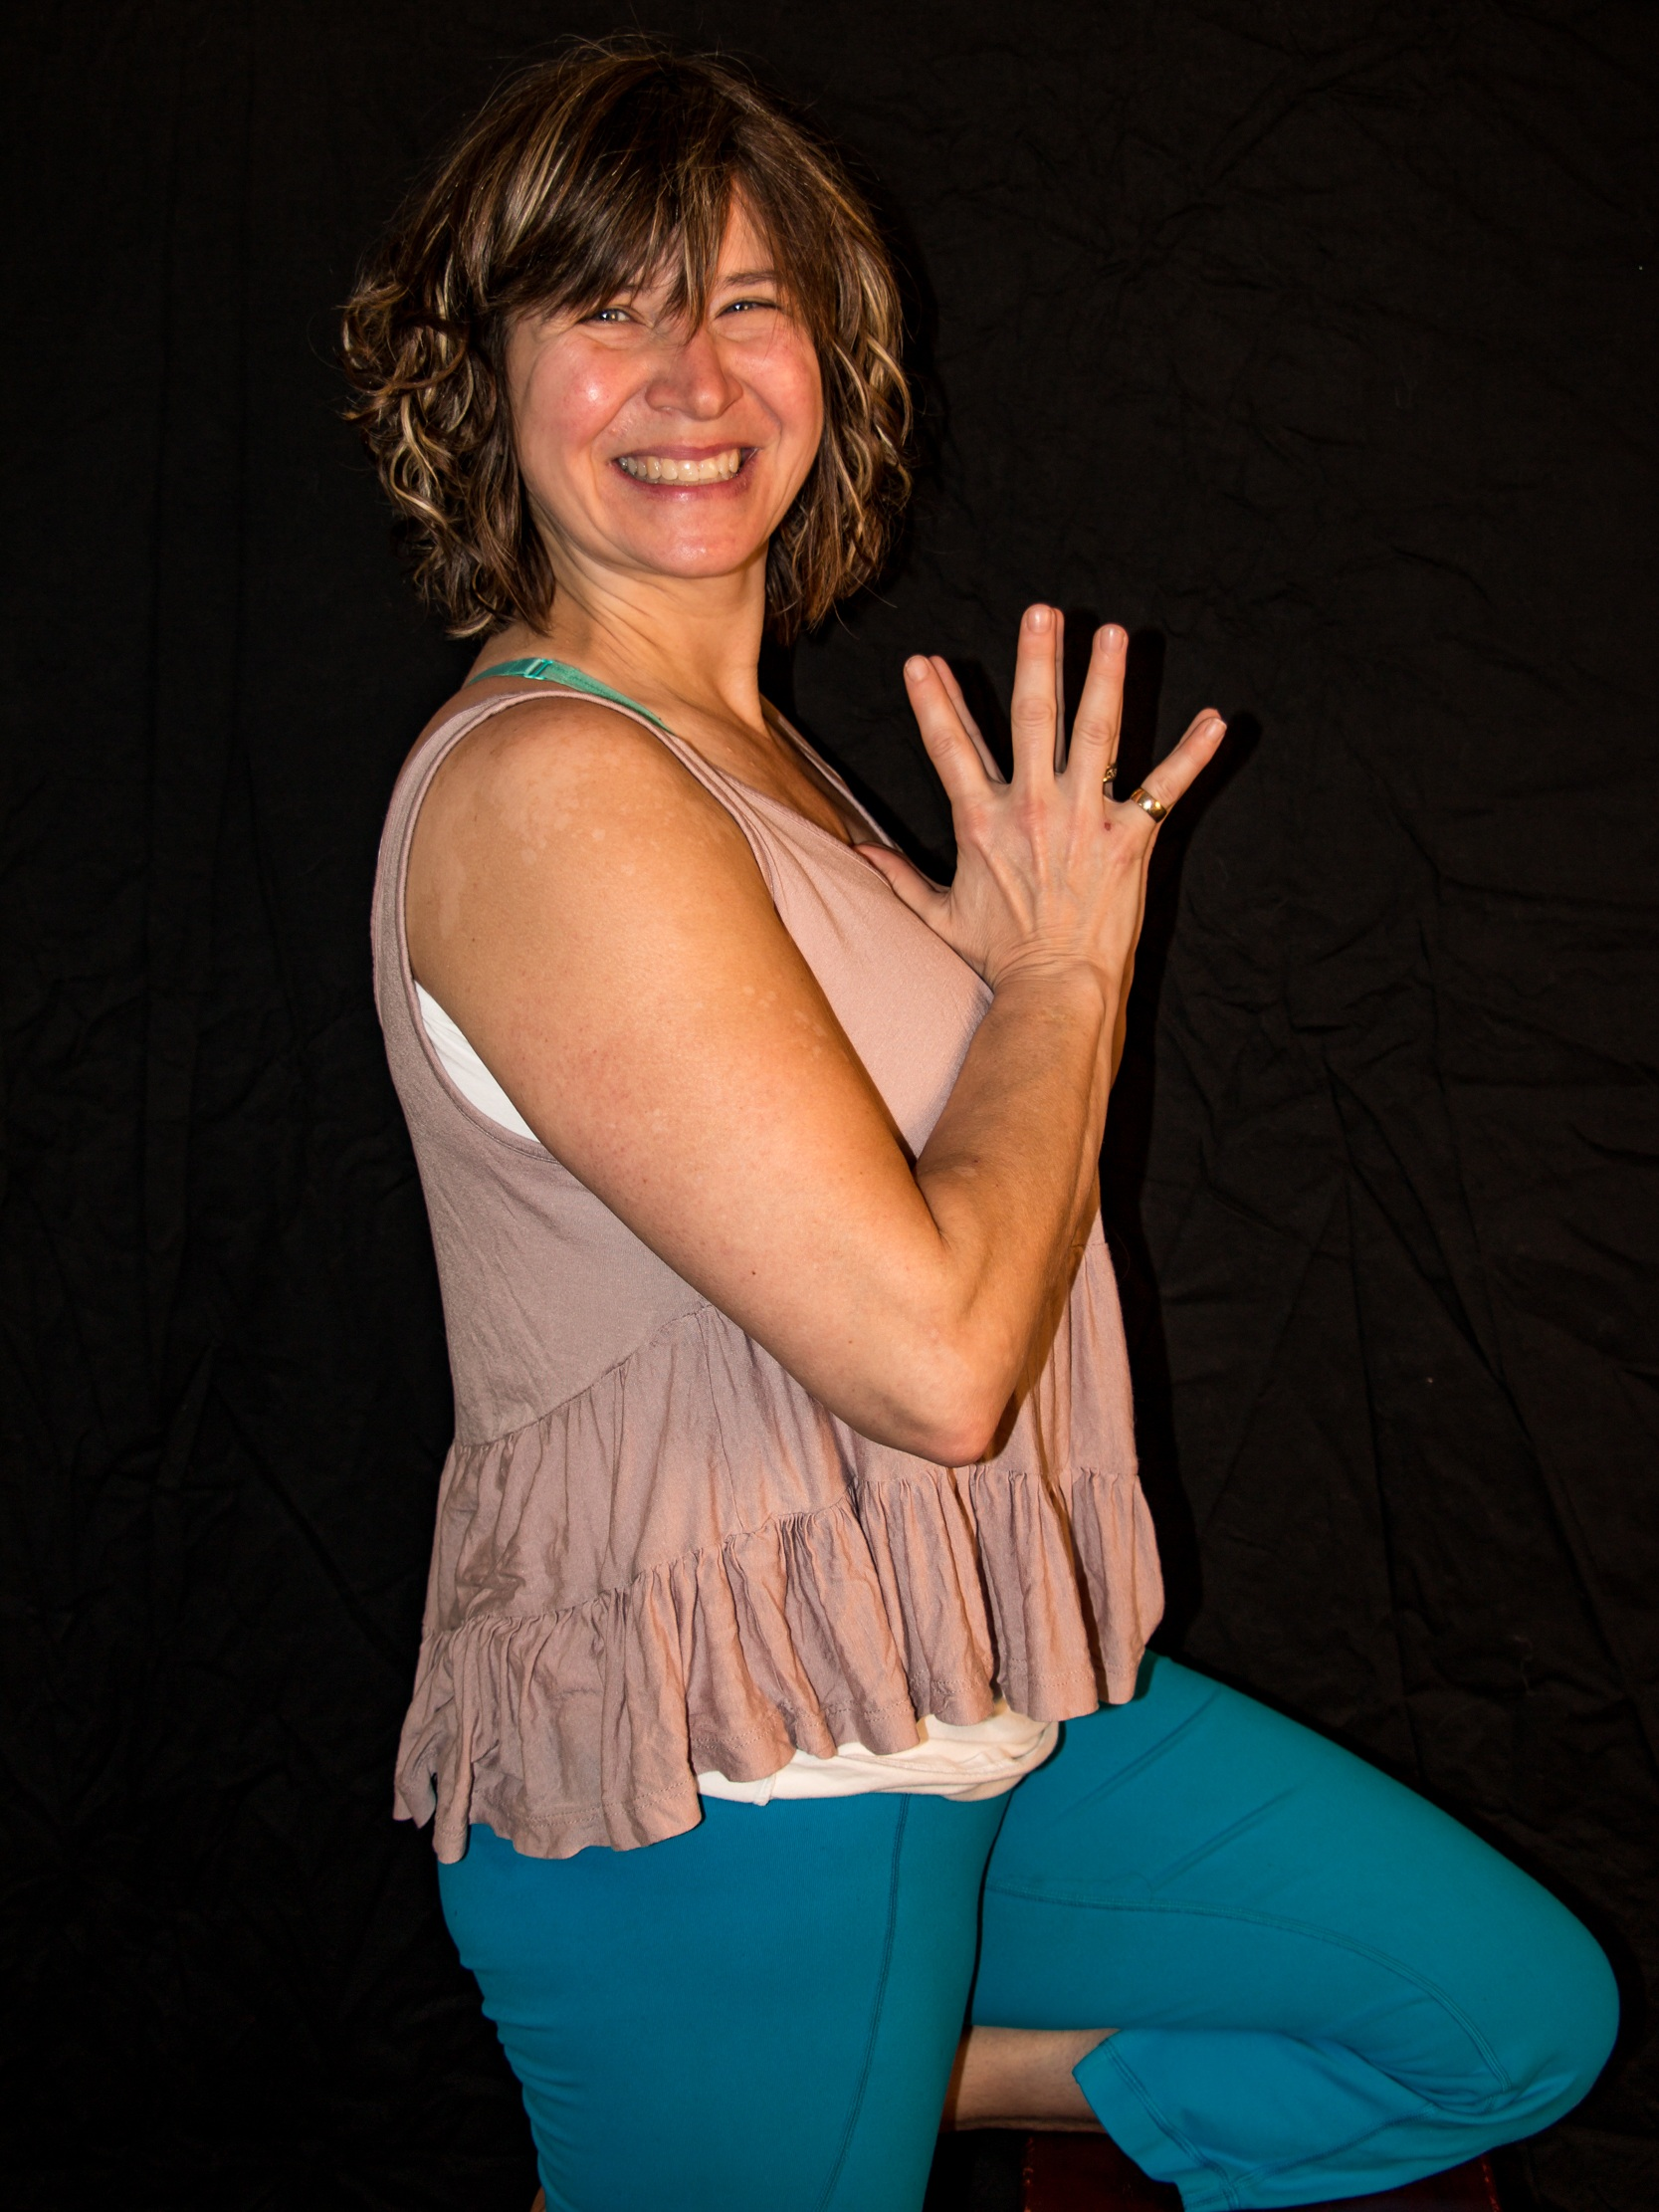 Star yoga instructor teacher Anchorage